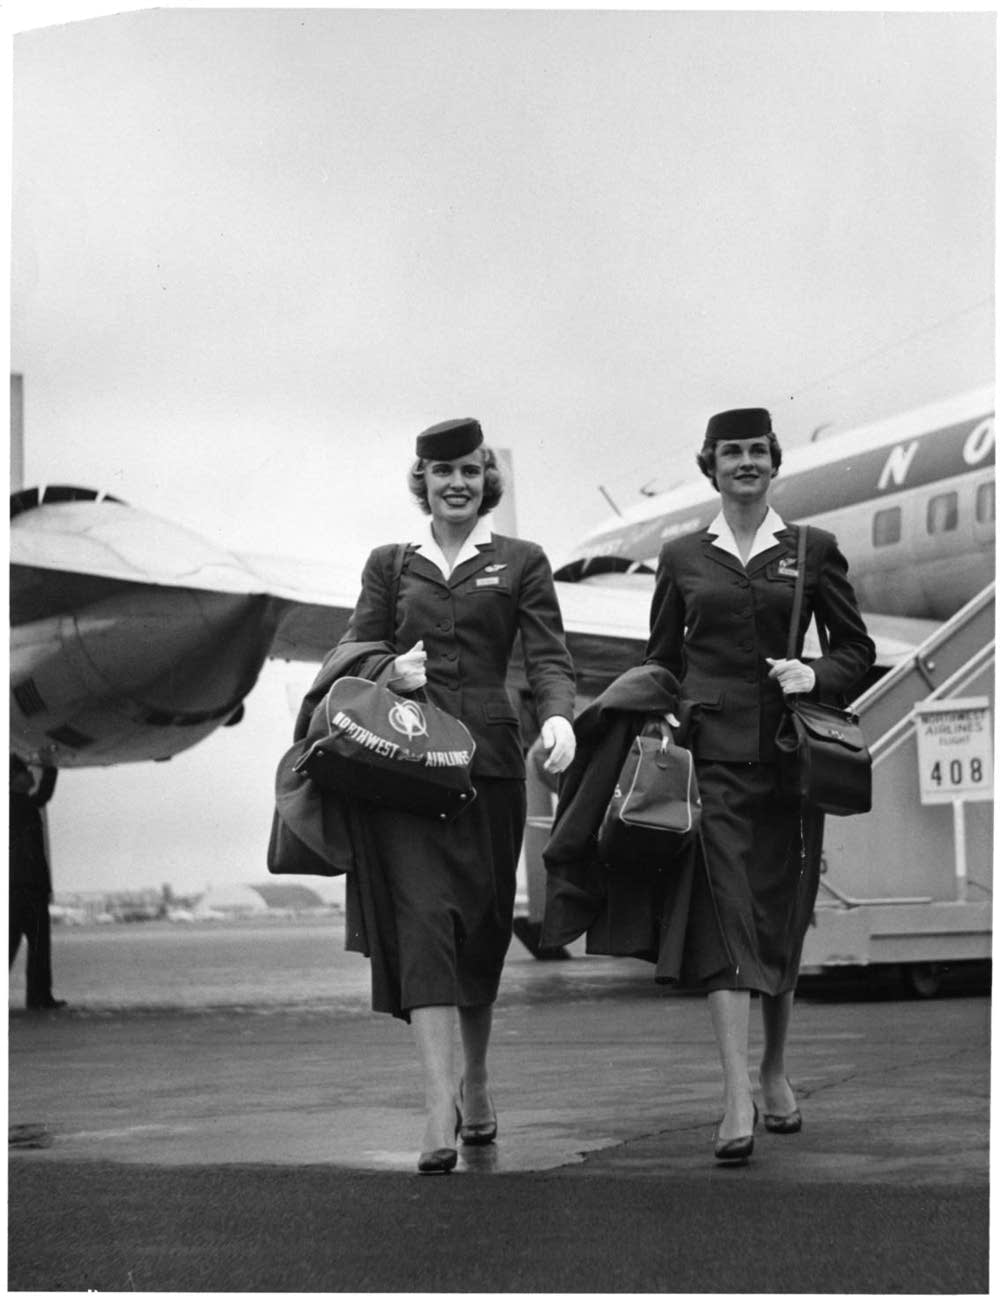 1952 flight attendants